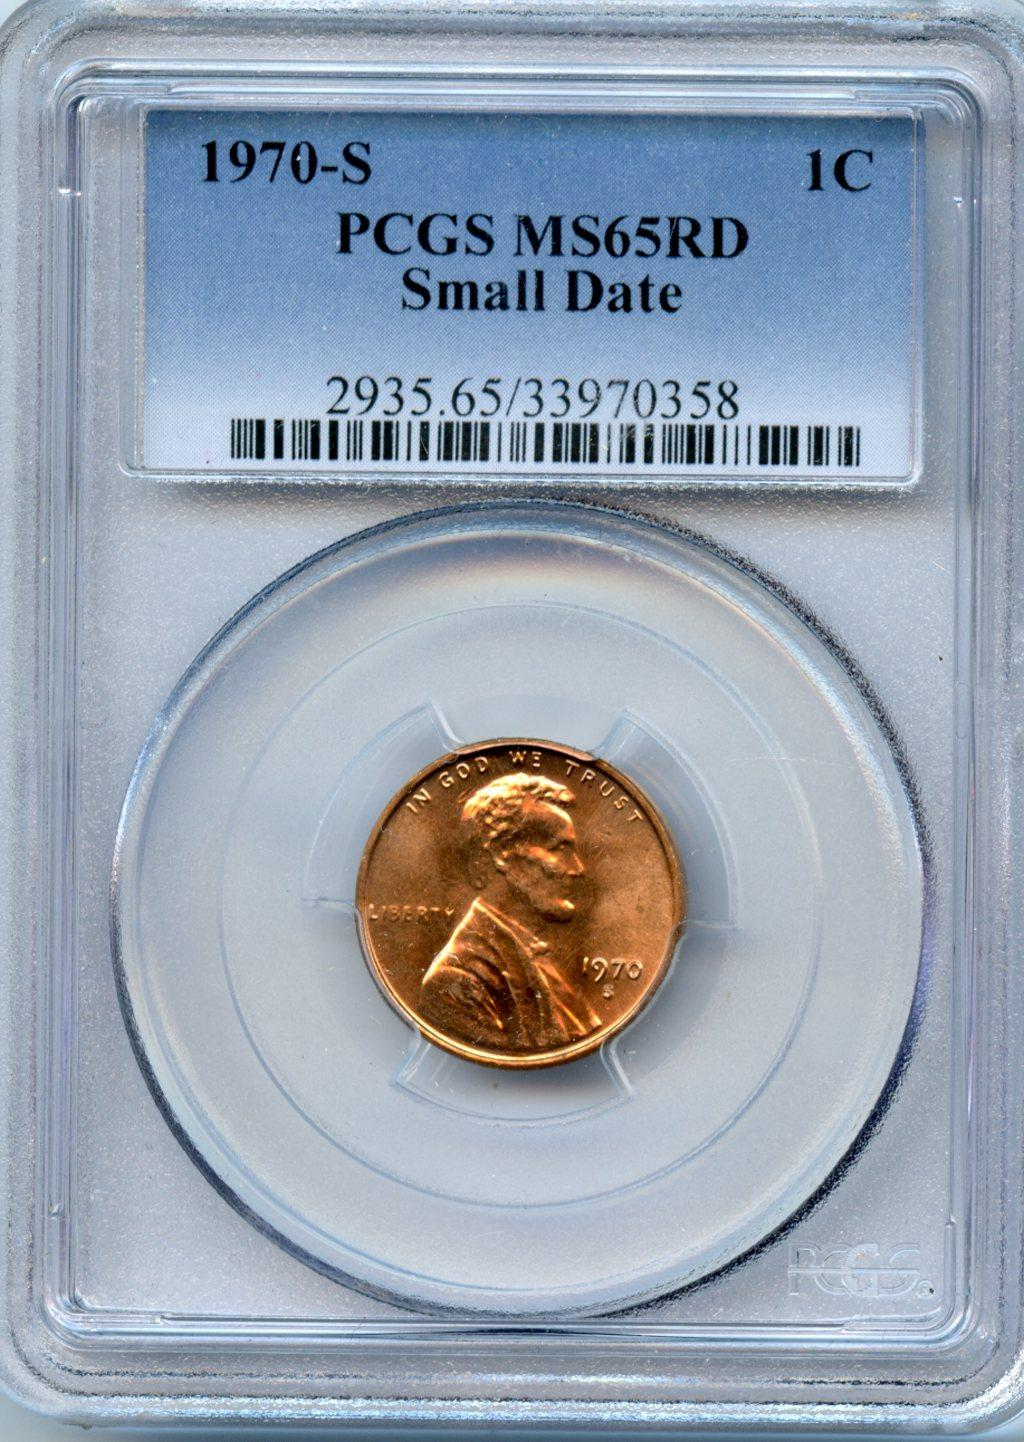 1970-S Lincoln Memorial Cent Small Date in PCGS MS 65 RD